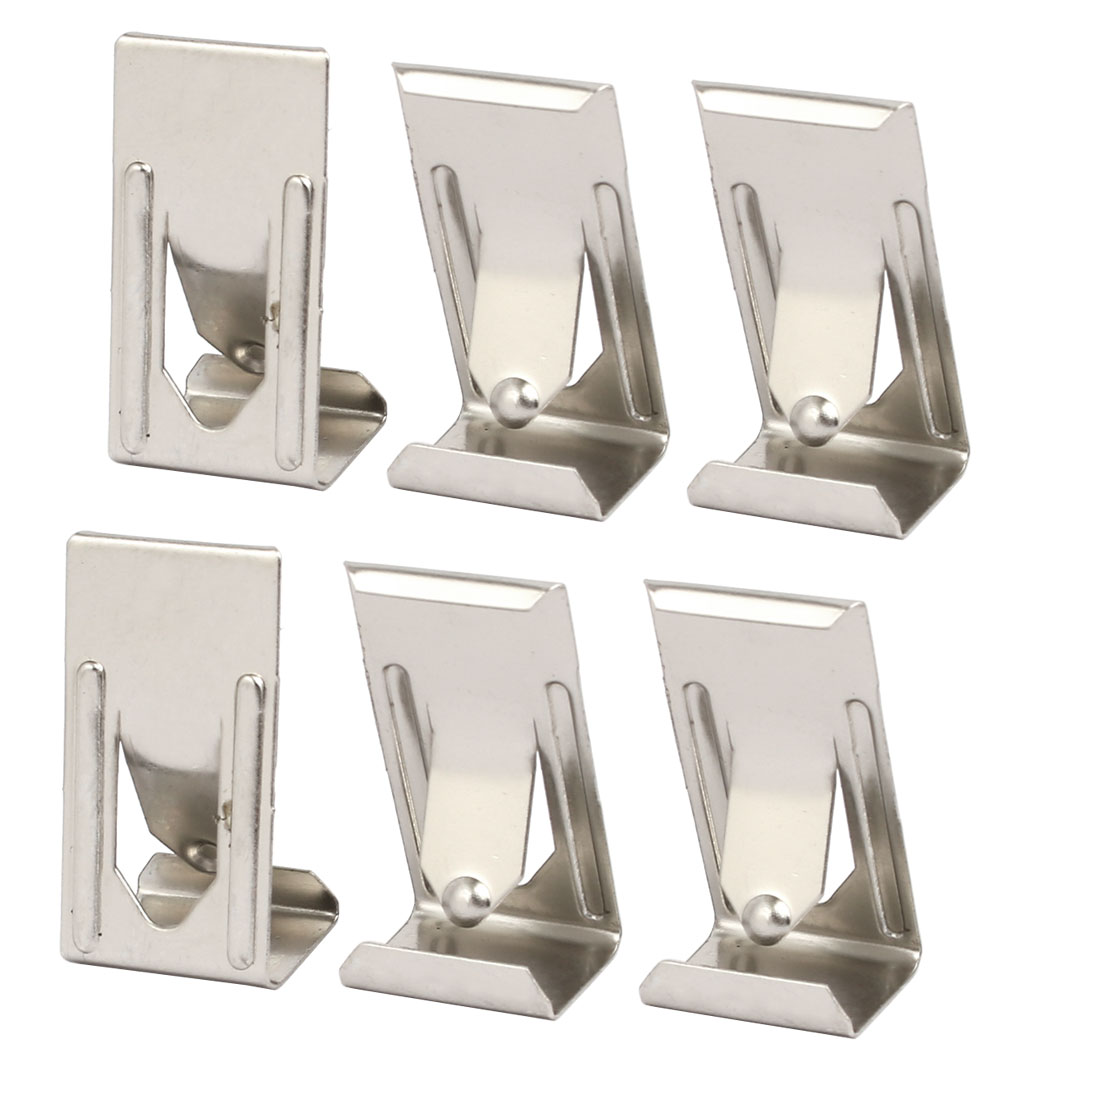 26mmx14mm Picture Photo Frame Metal Spring Turn Clip Hanger Siver Tone 6pcs